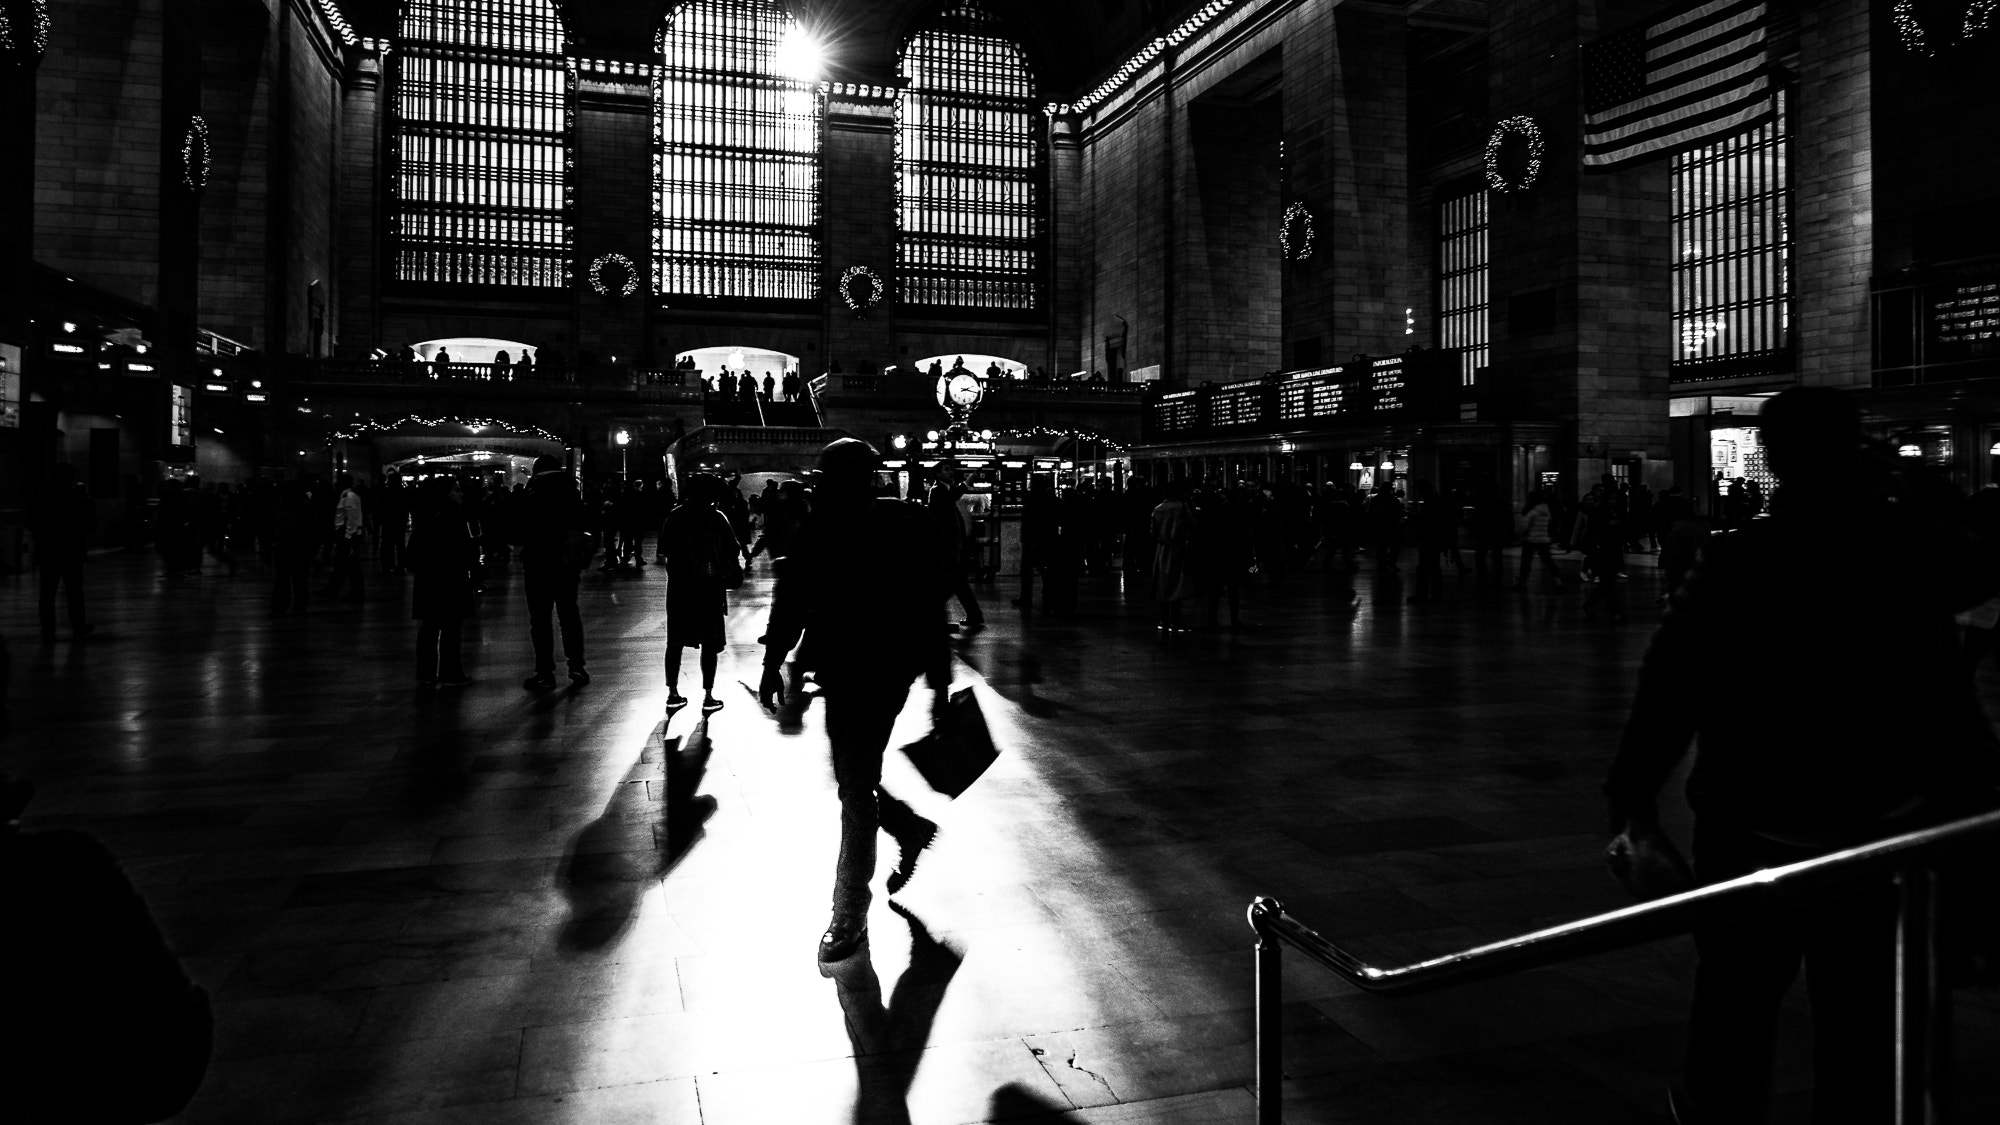 Filegrand central station new york black and white street photography 237505303